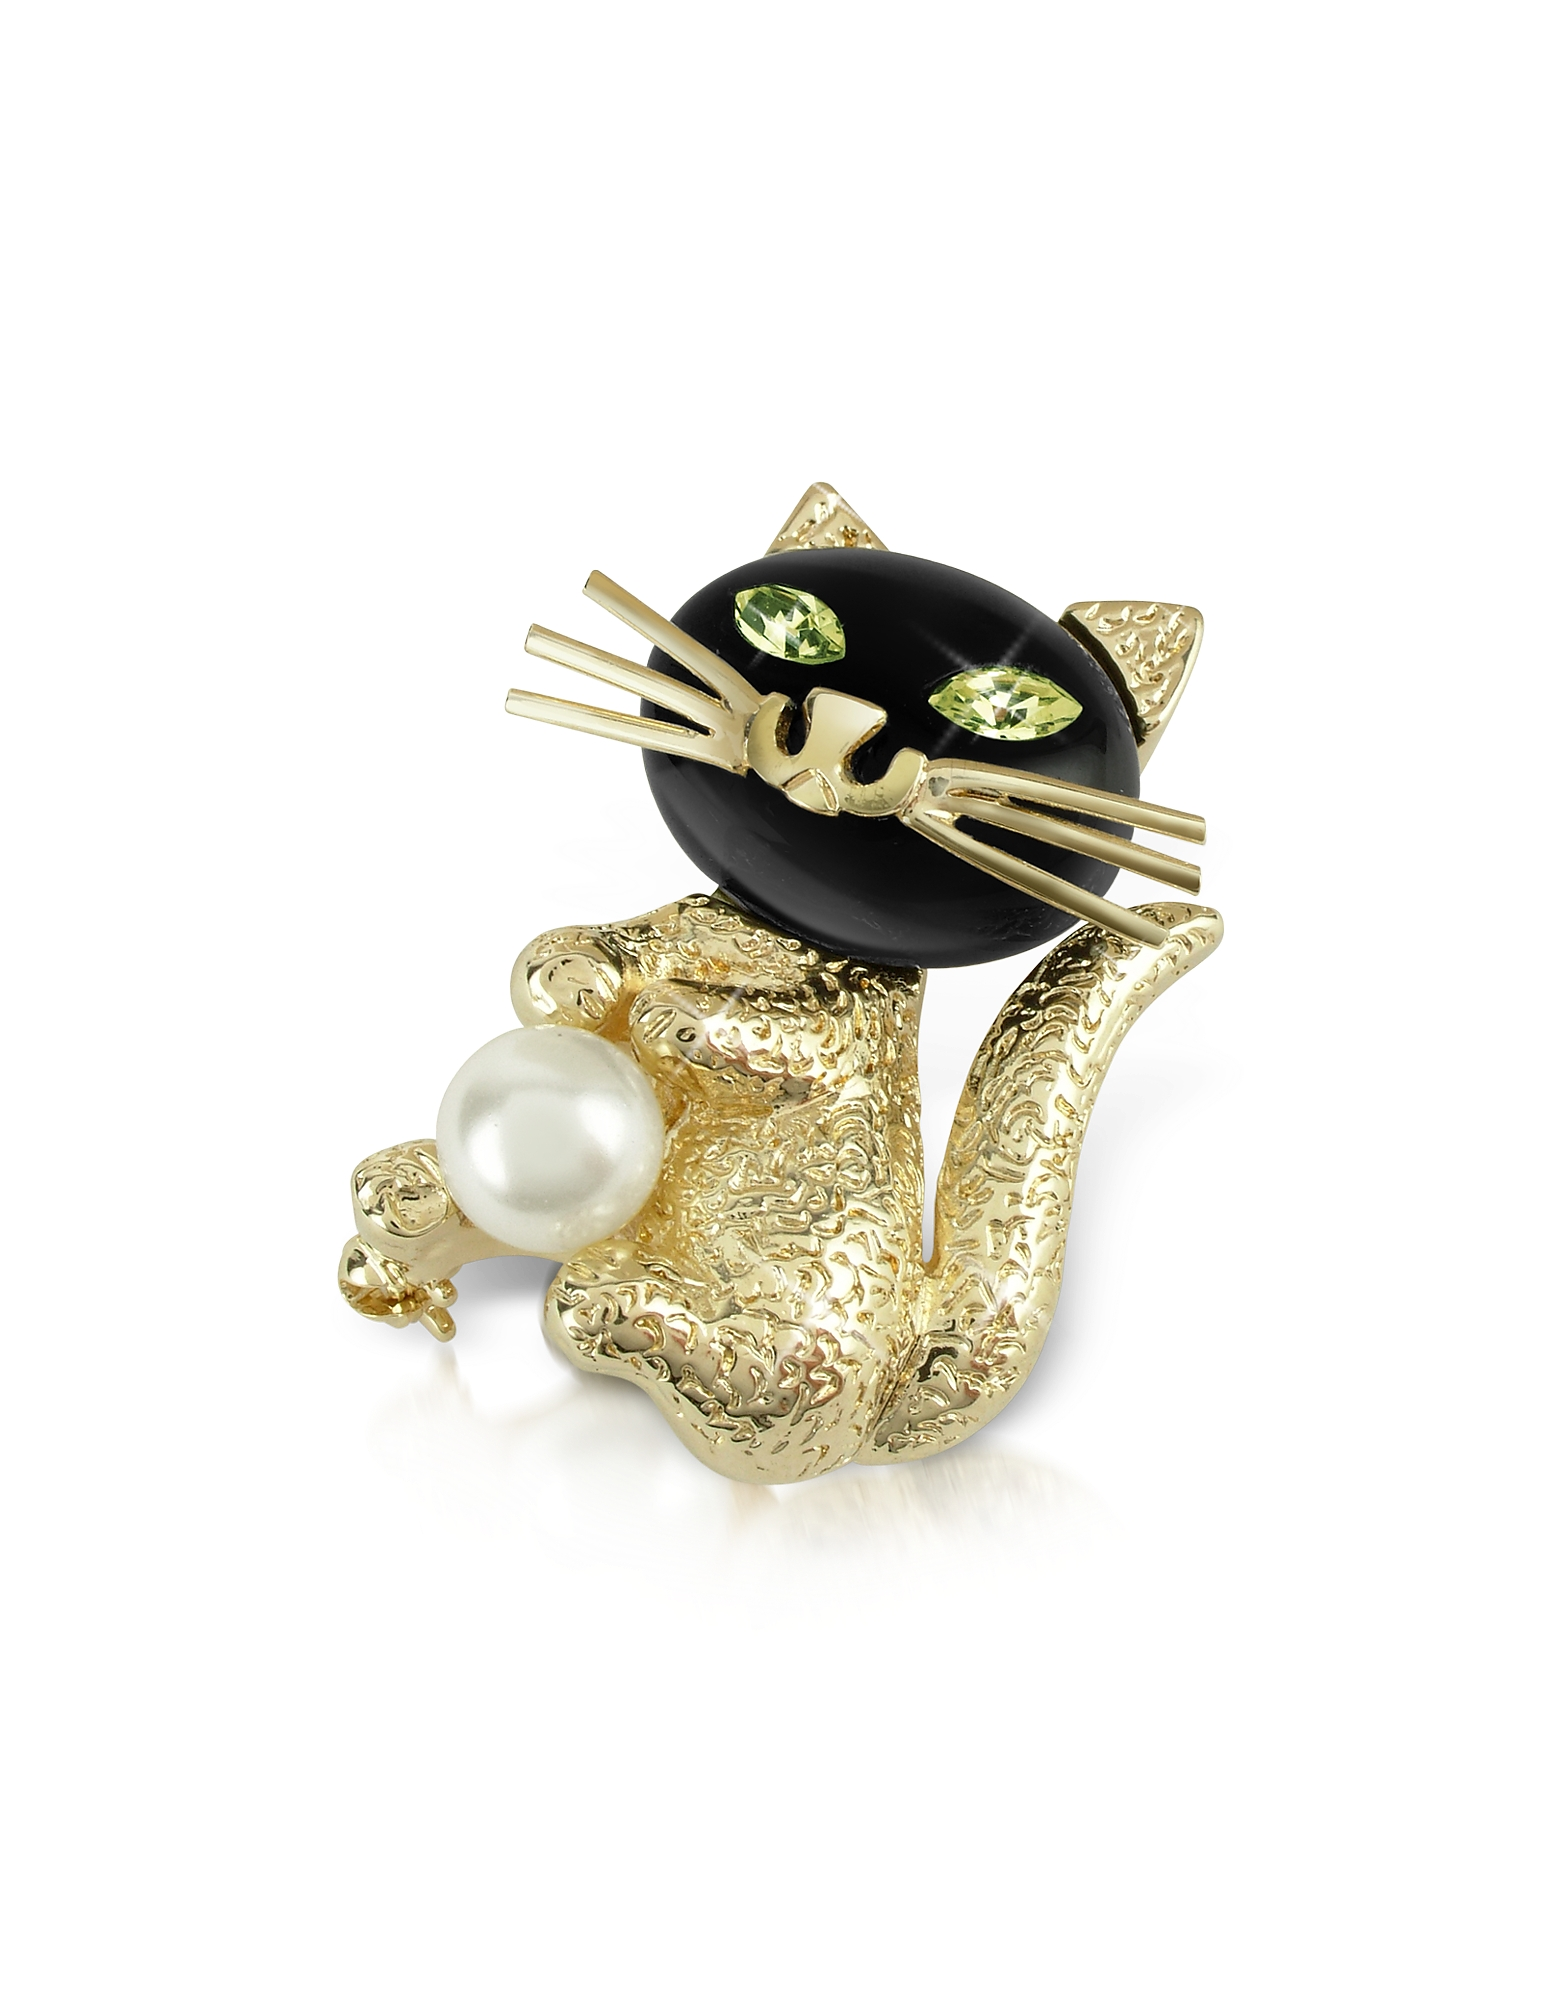 Green-Eyed Cat Pin